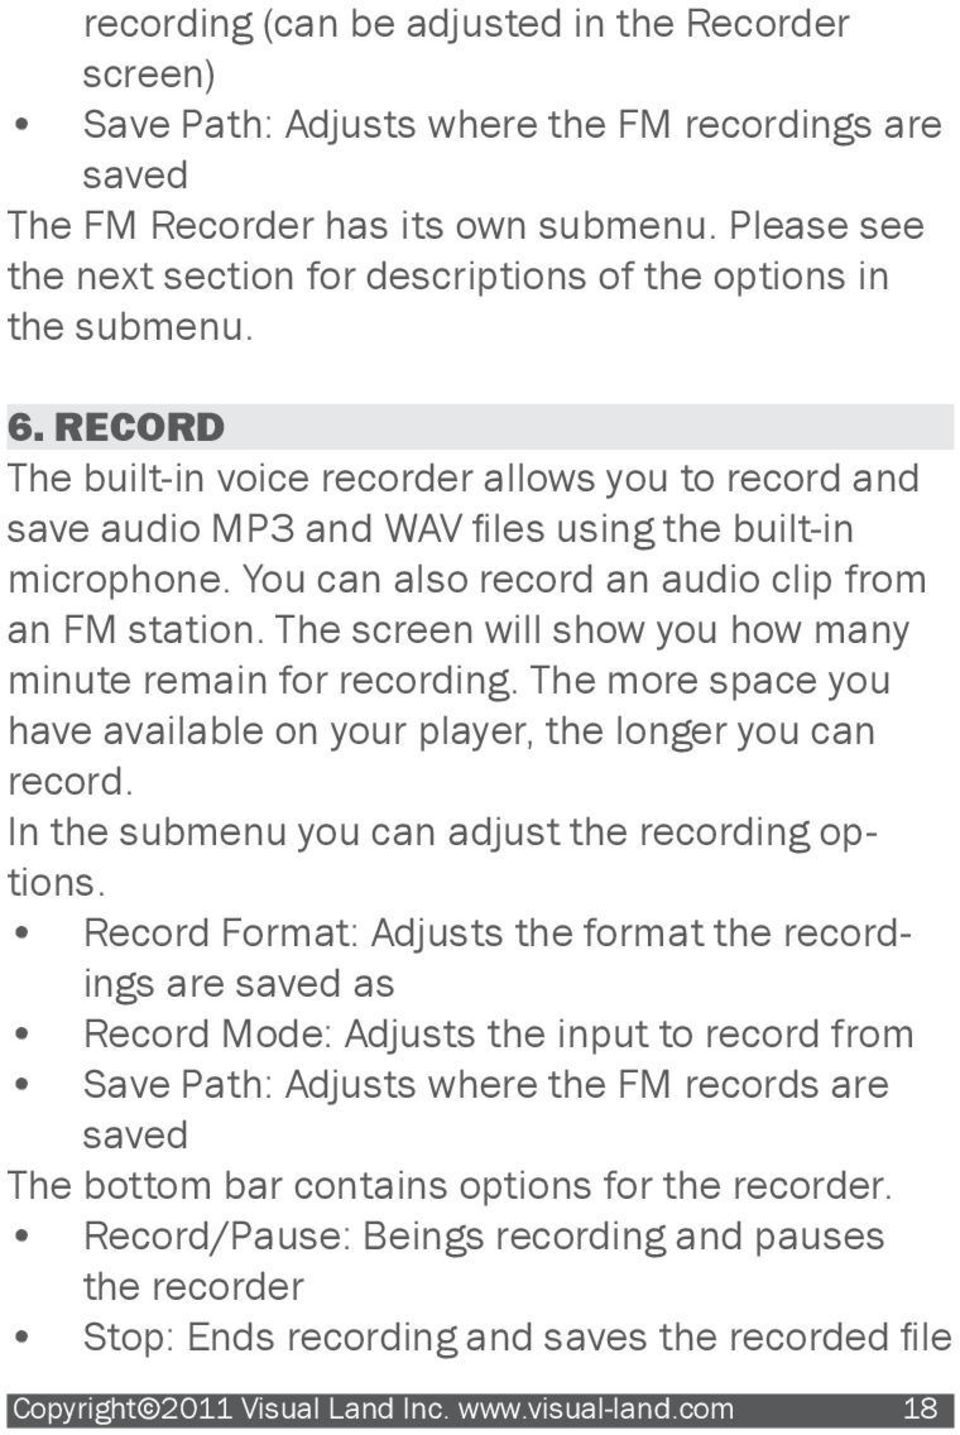 You can also record an audio clip from an FM station. The screen will show you how many minute remain for recording. The more space you have available on your player, the longer you can record.